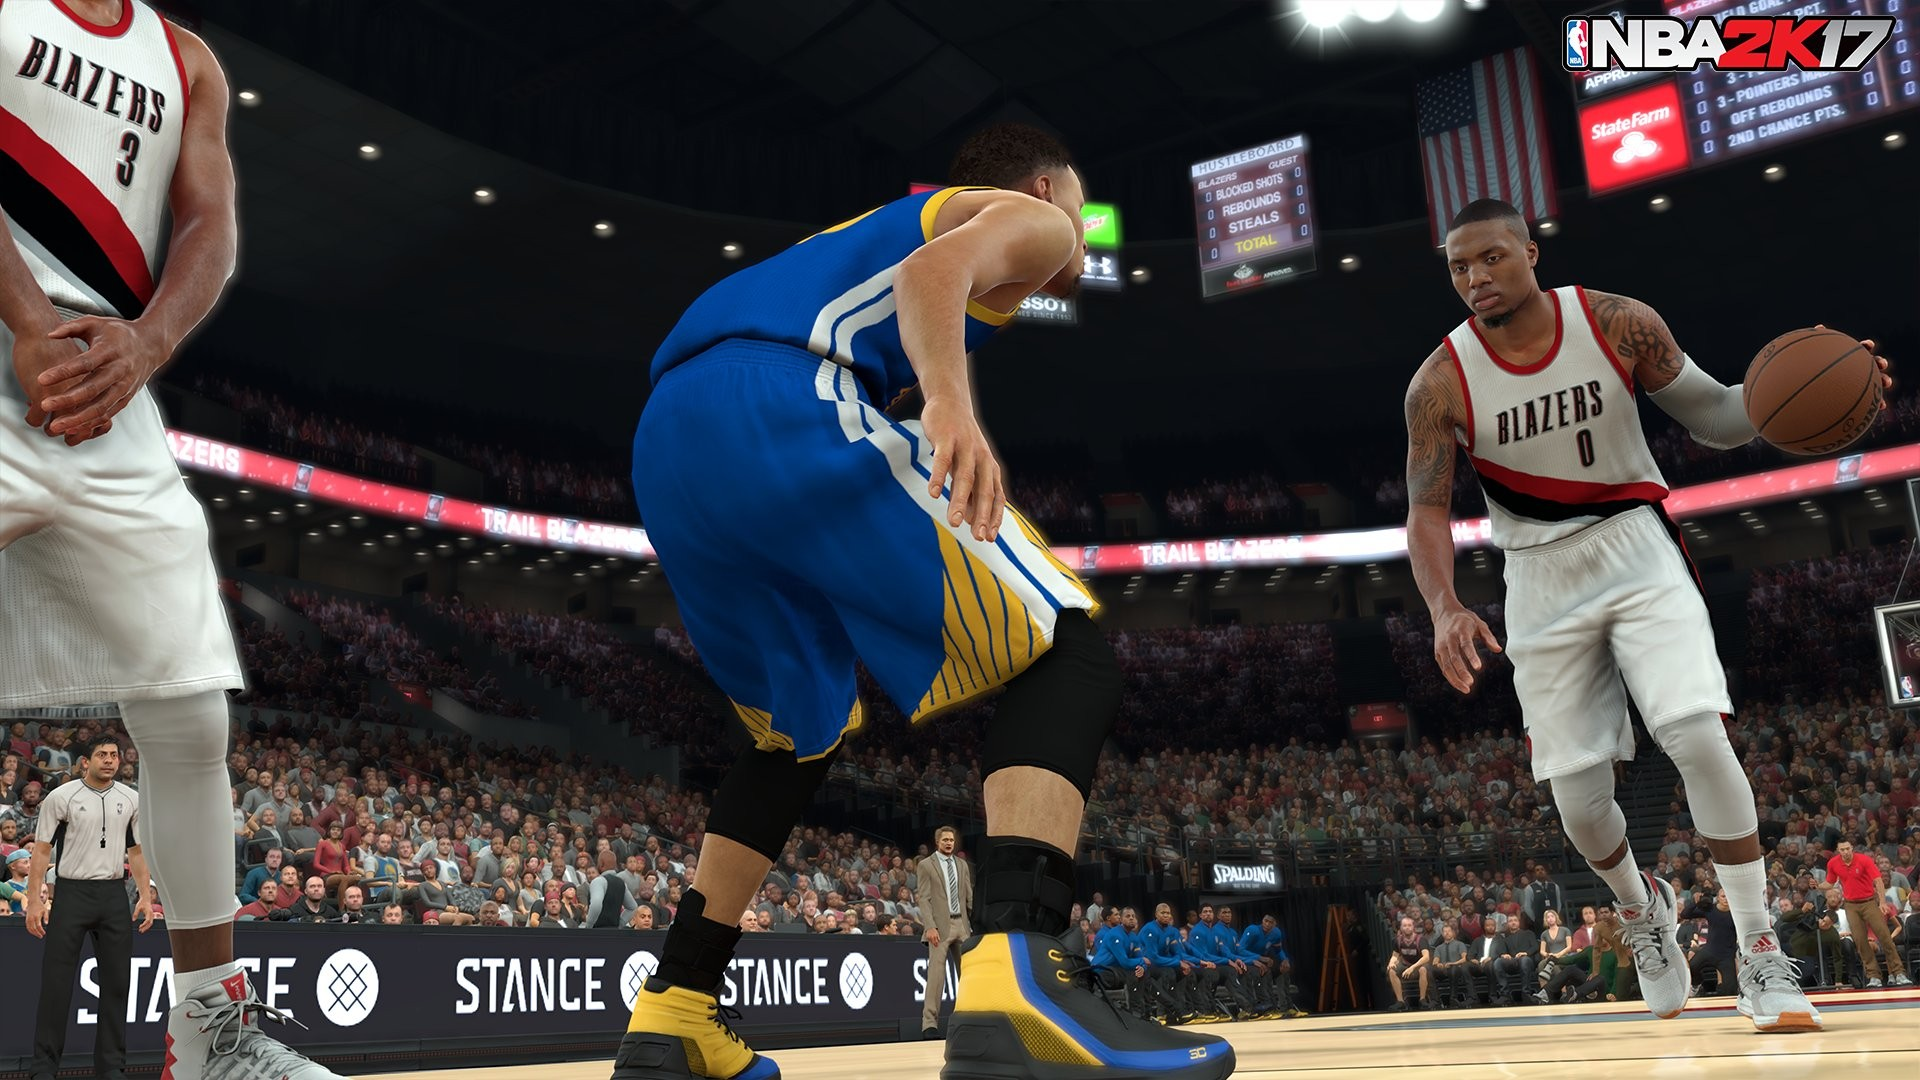 nba 2k17 patch 1.07